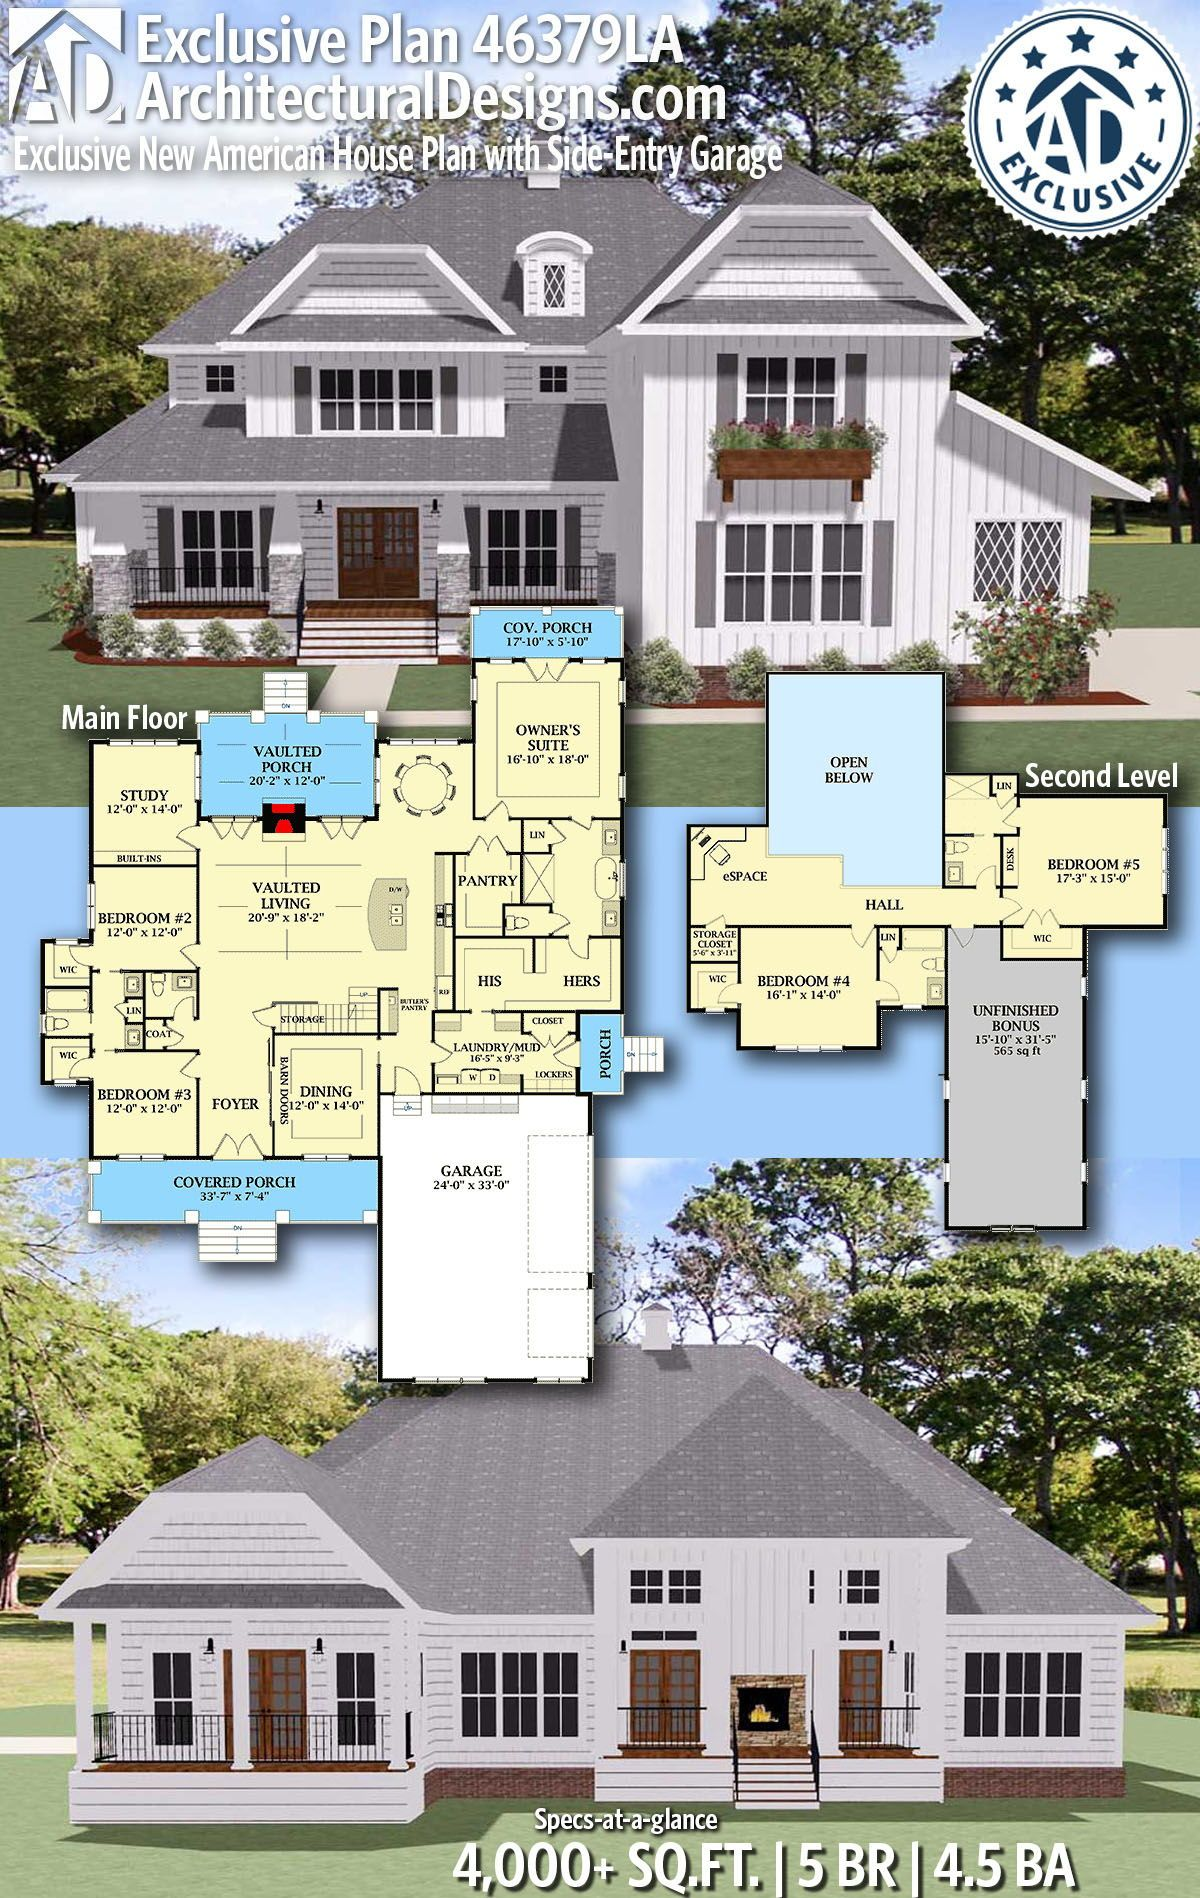 Plan 46379la Exclusive New American House Plan With Side Entry Garage American Houses House Blueprints House Plans